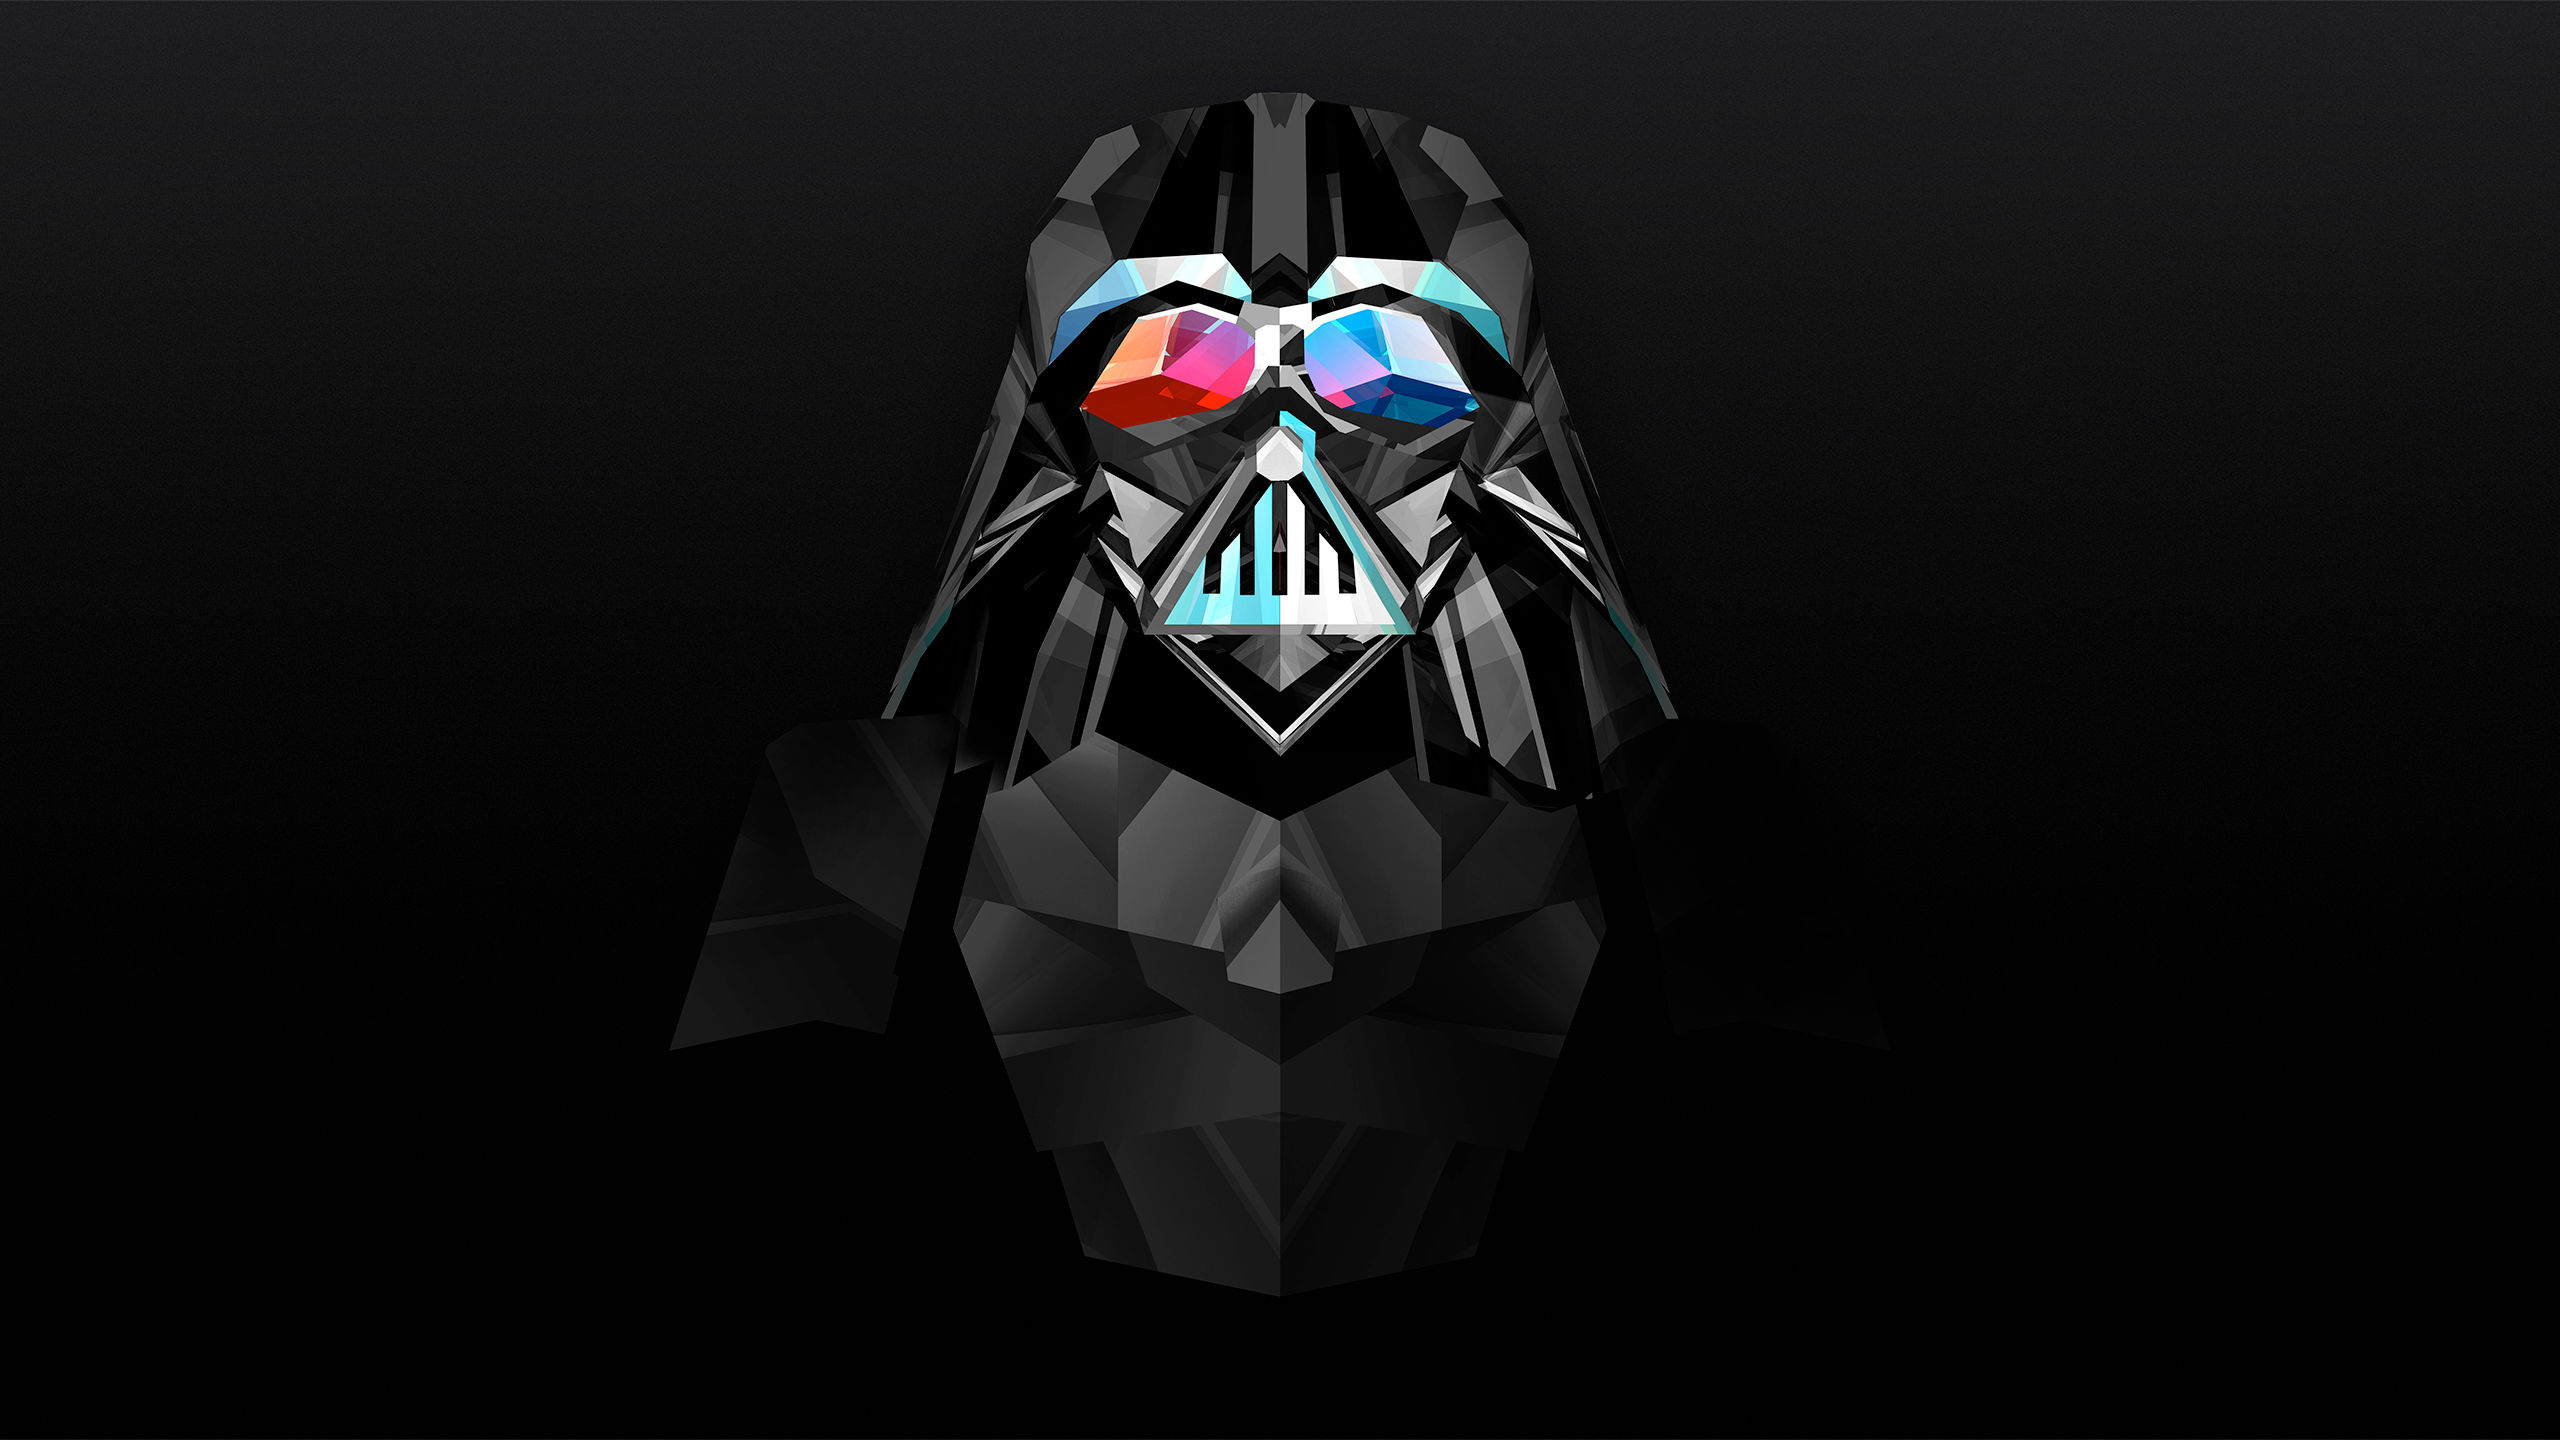 Storm Trooper Wallpaper Iphone Awesome